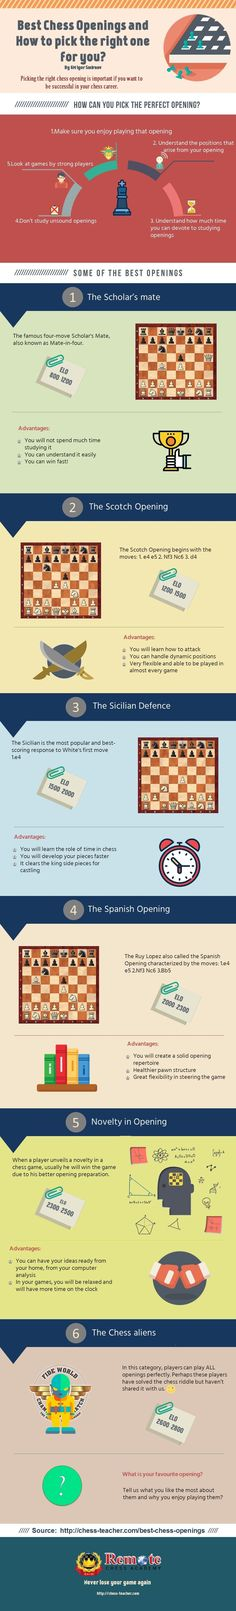 Best-chess-openings-infographic.jpg (960×6554)